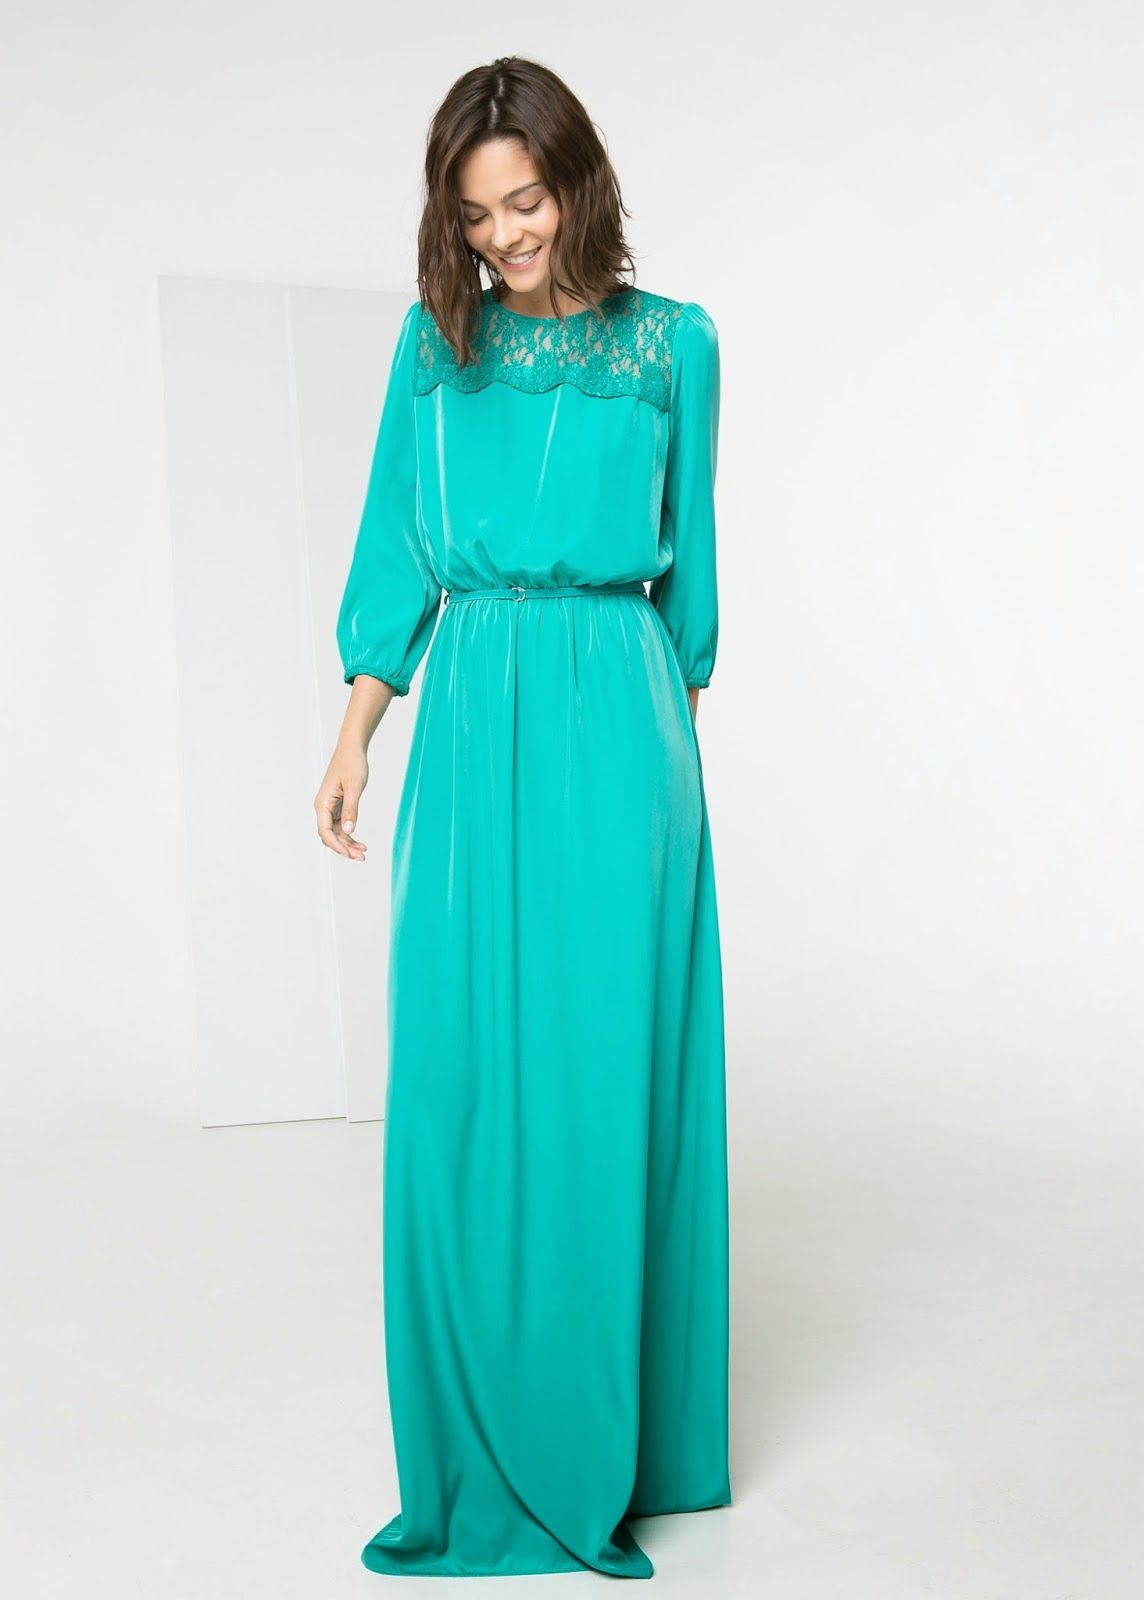 Mode-sty: One and Done: Solid Maxi Dress Finds | Long Sleeve ...